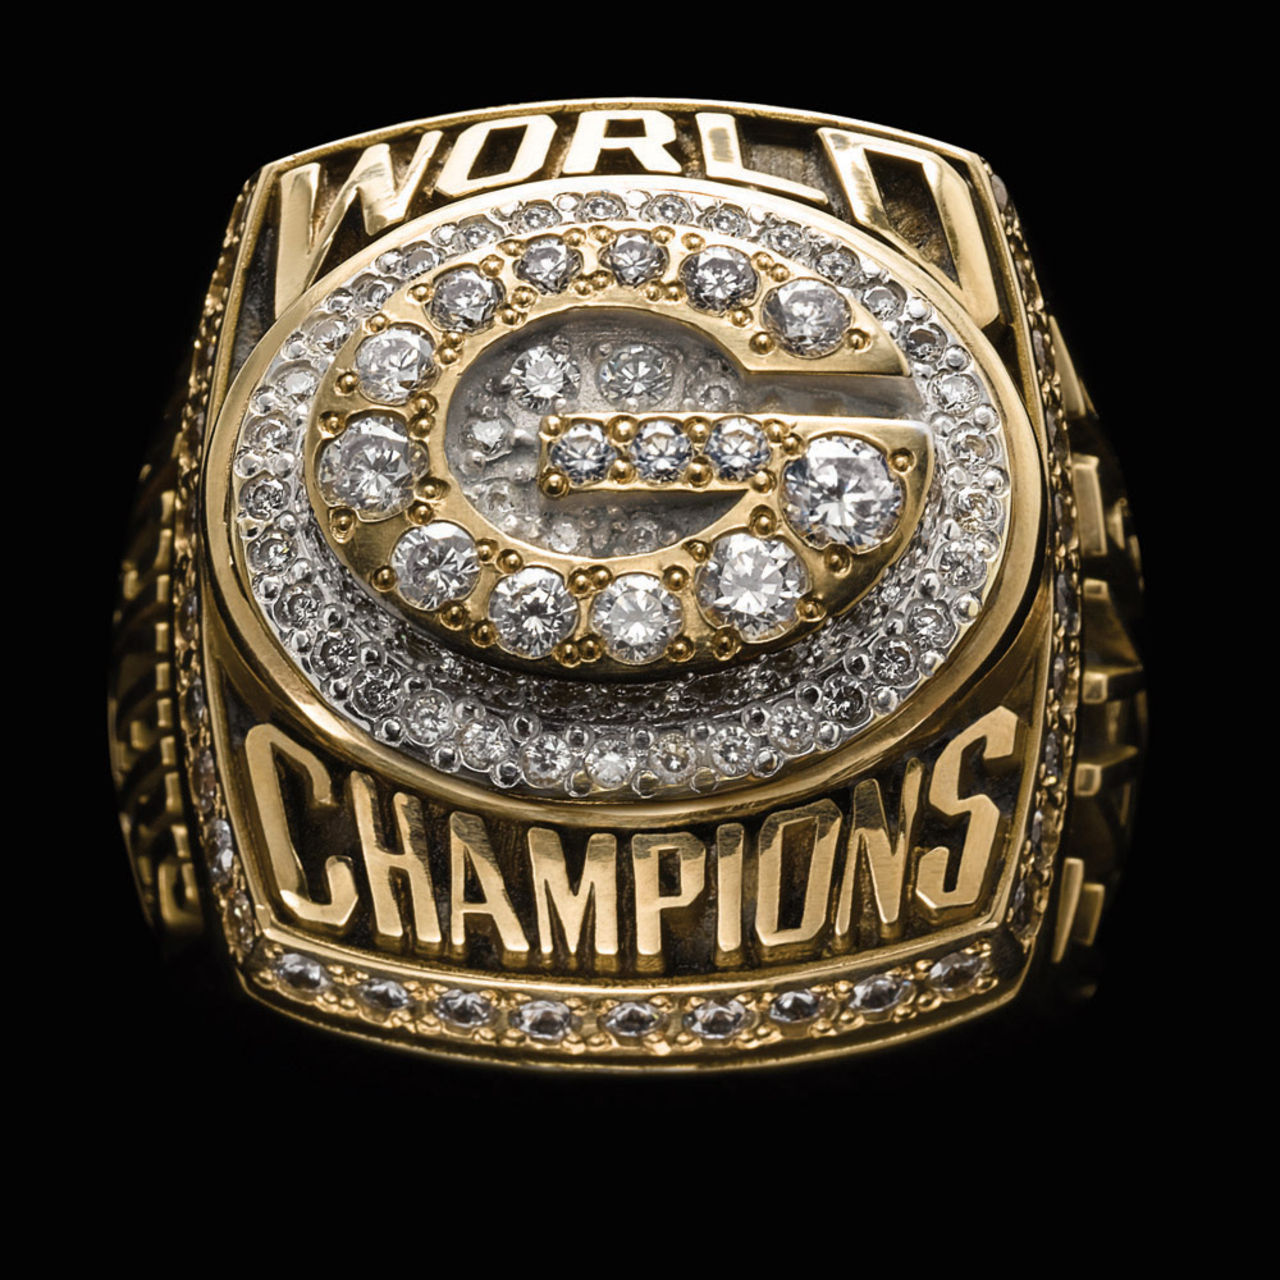 Green Bay Packers 1997 champions ring